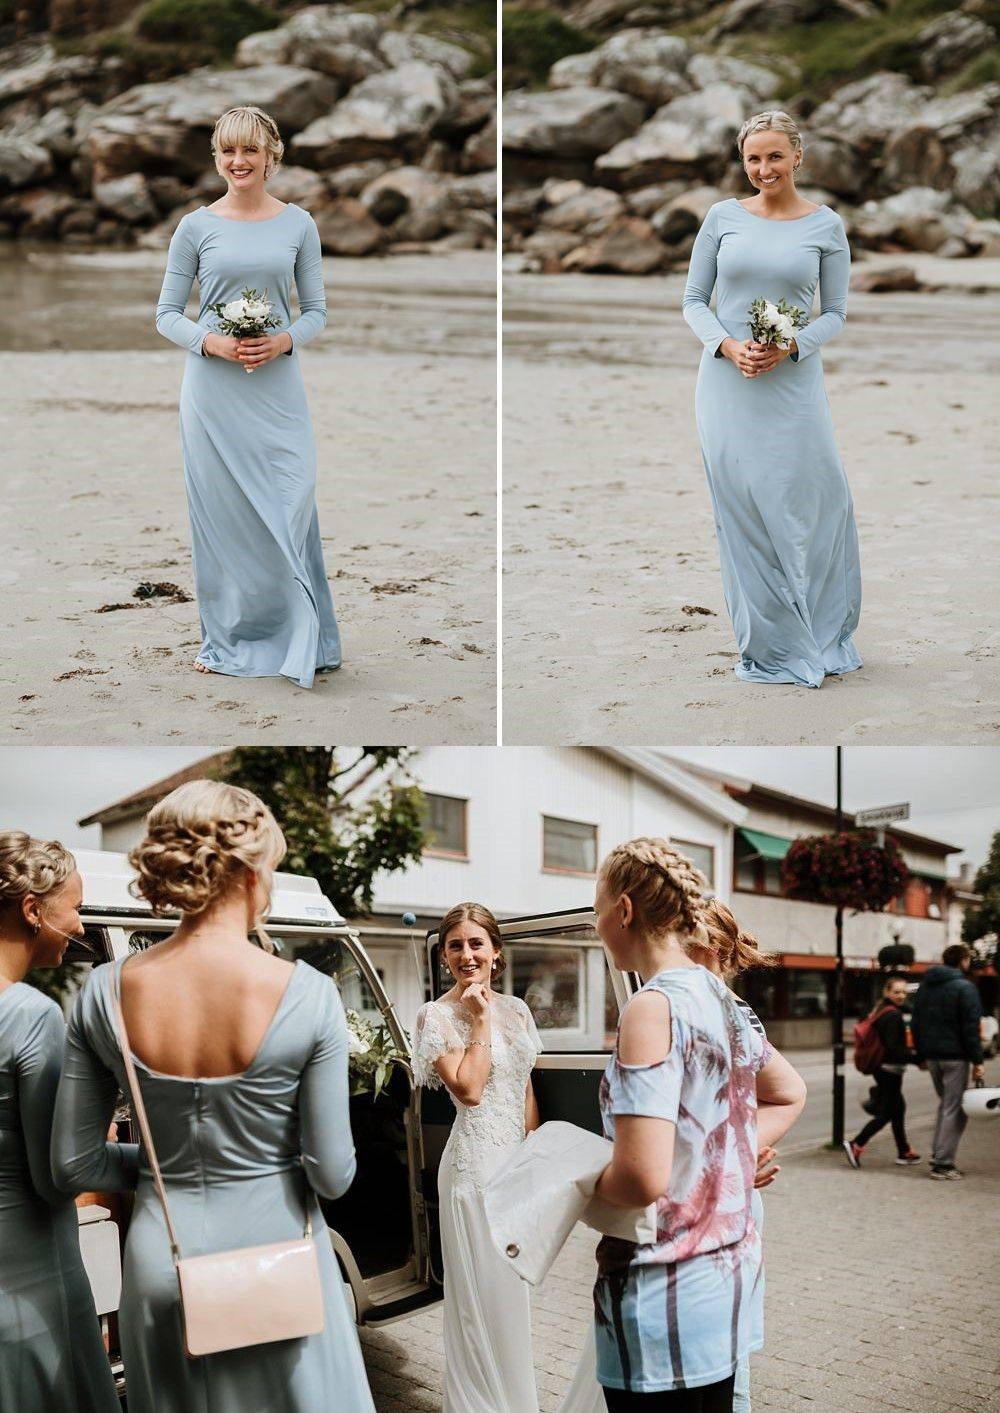 Sheath round neck long sleeves blue bridesmaid dress bridesmaid